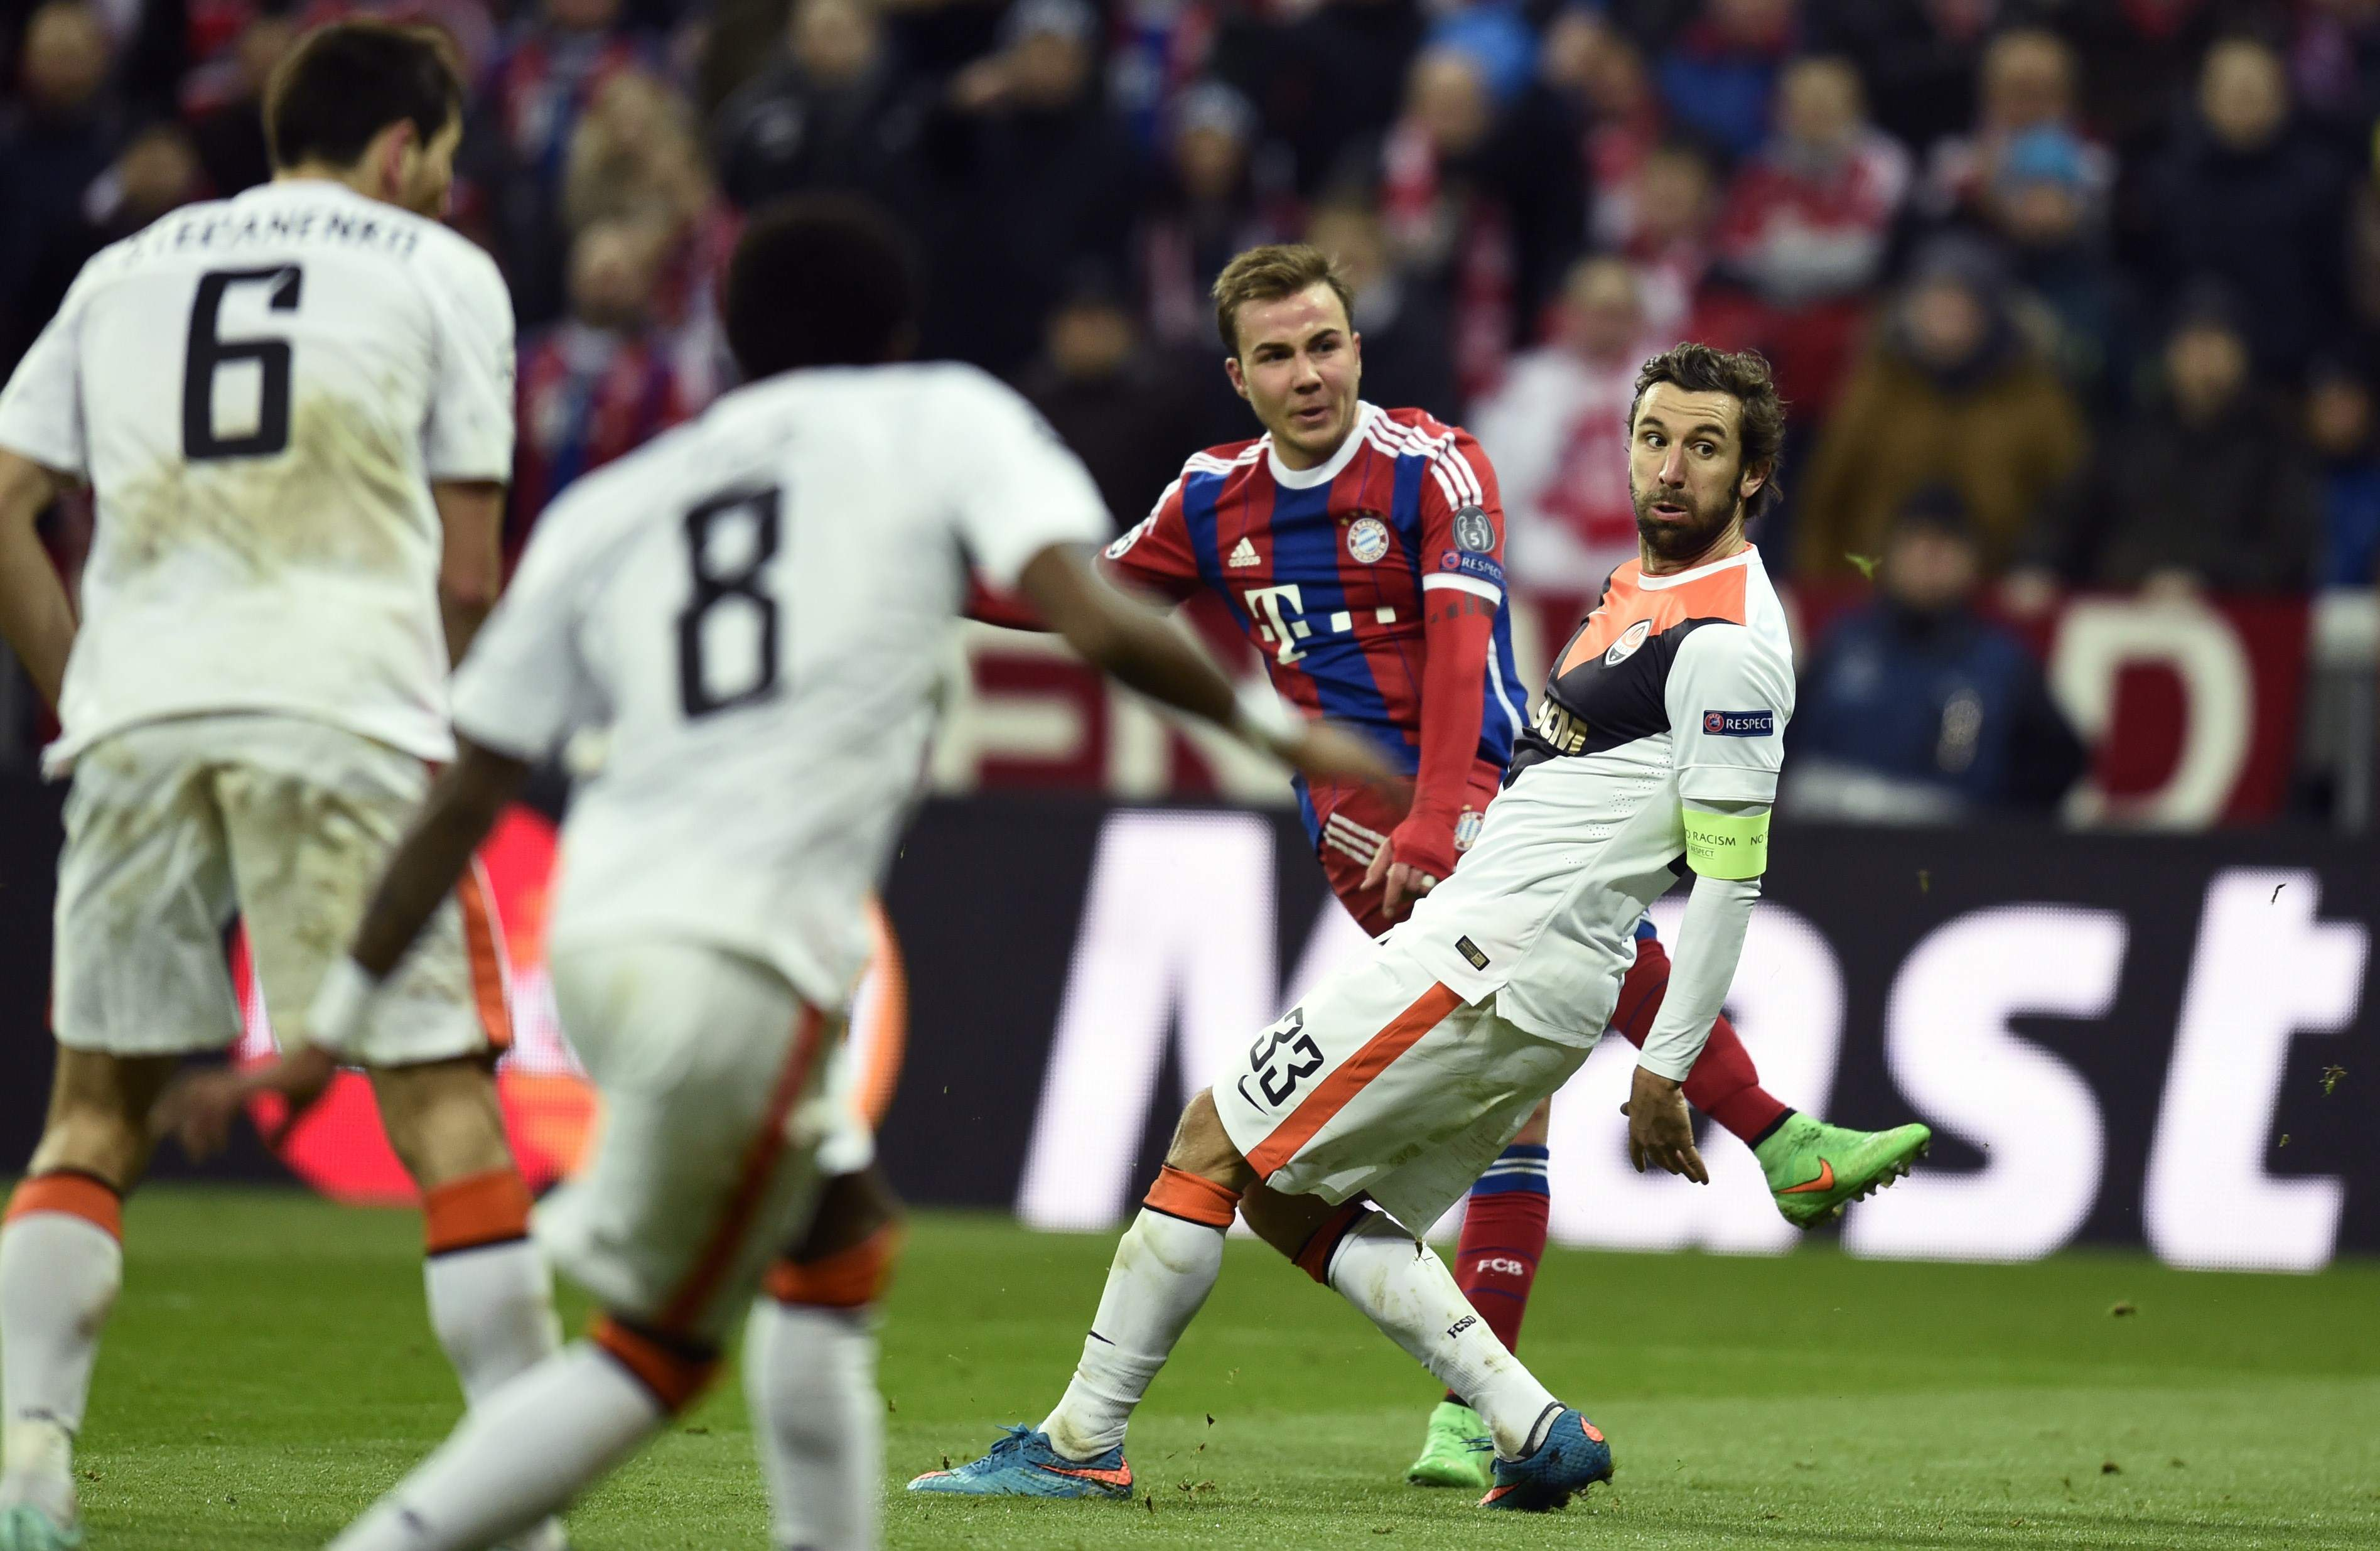 Bayern crave genuine test to avoid repeat of Madrid mauling